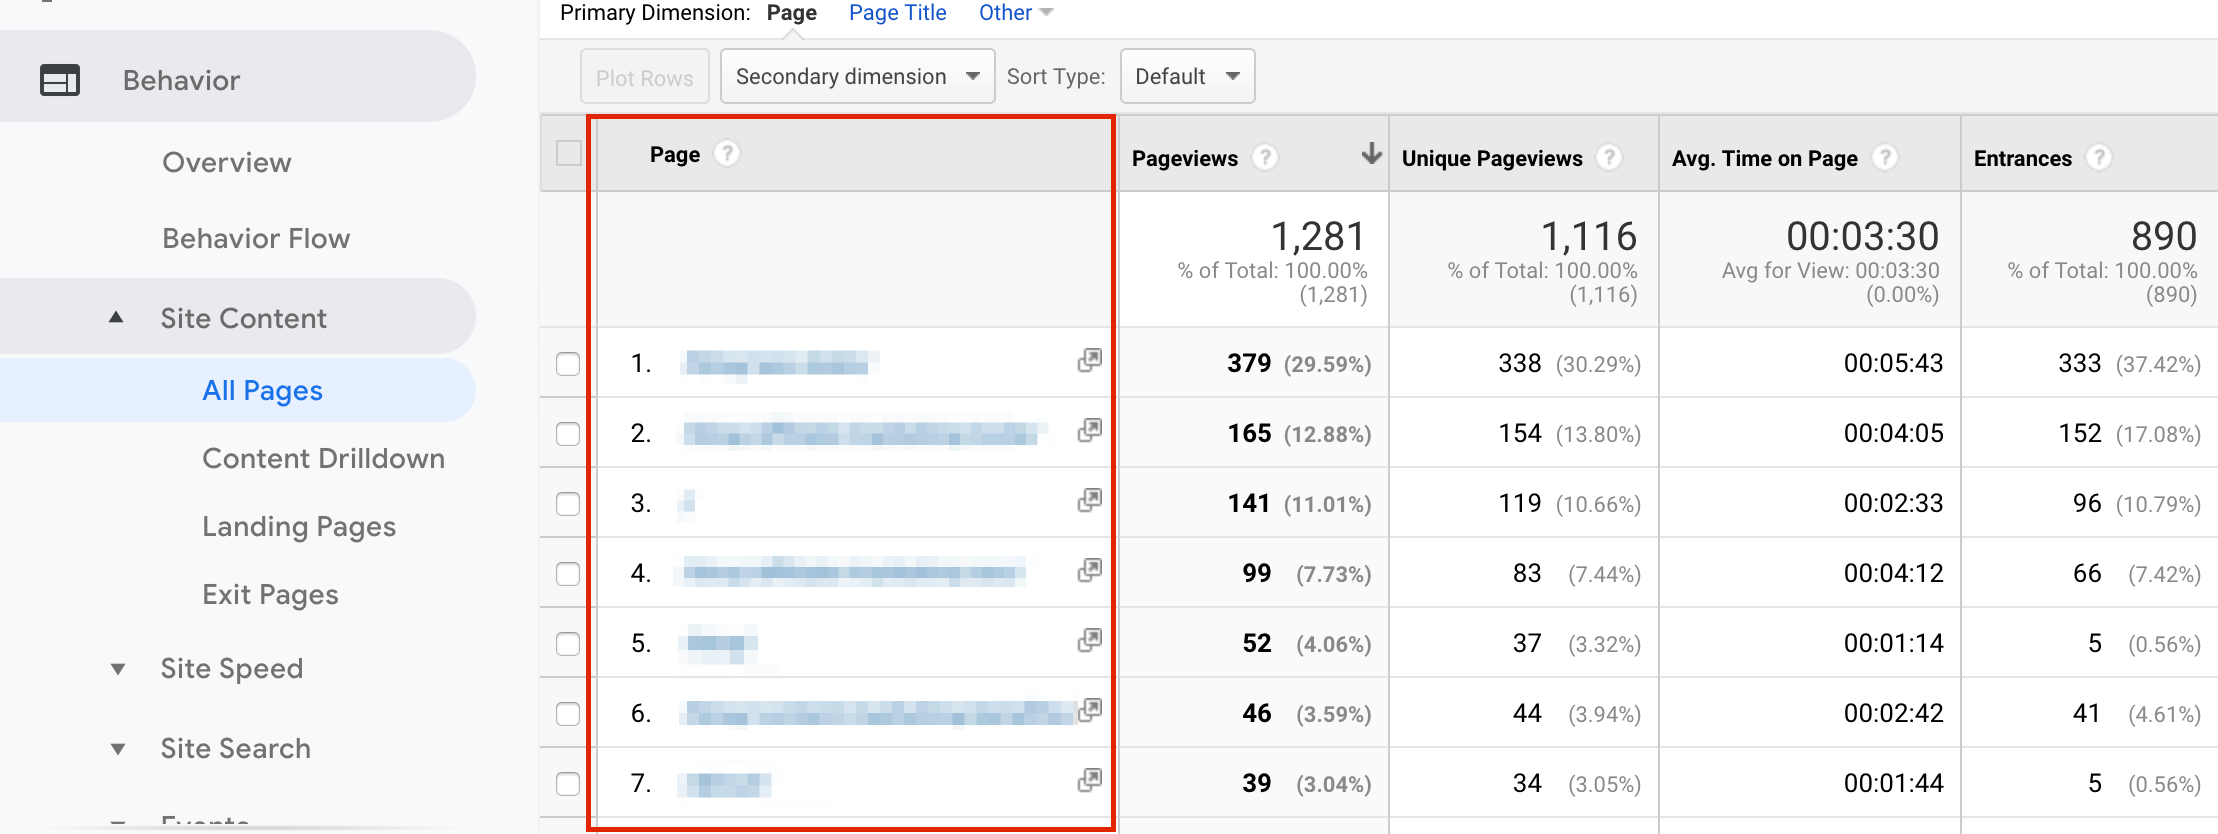 Top performing website pages